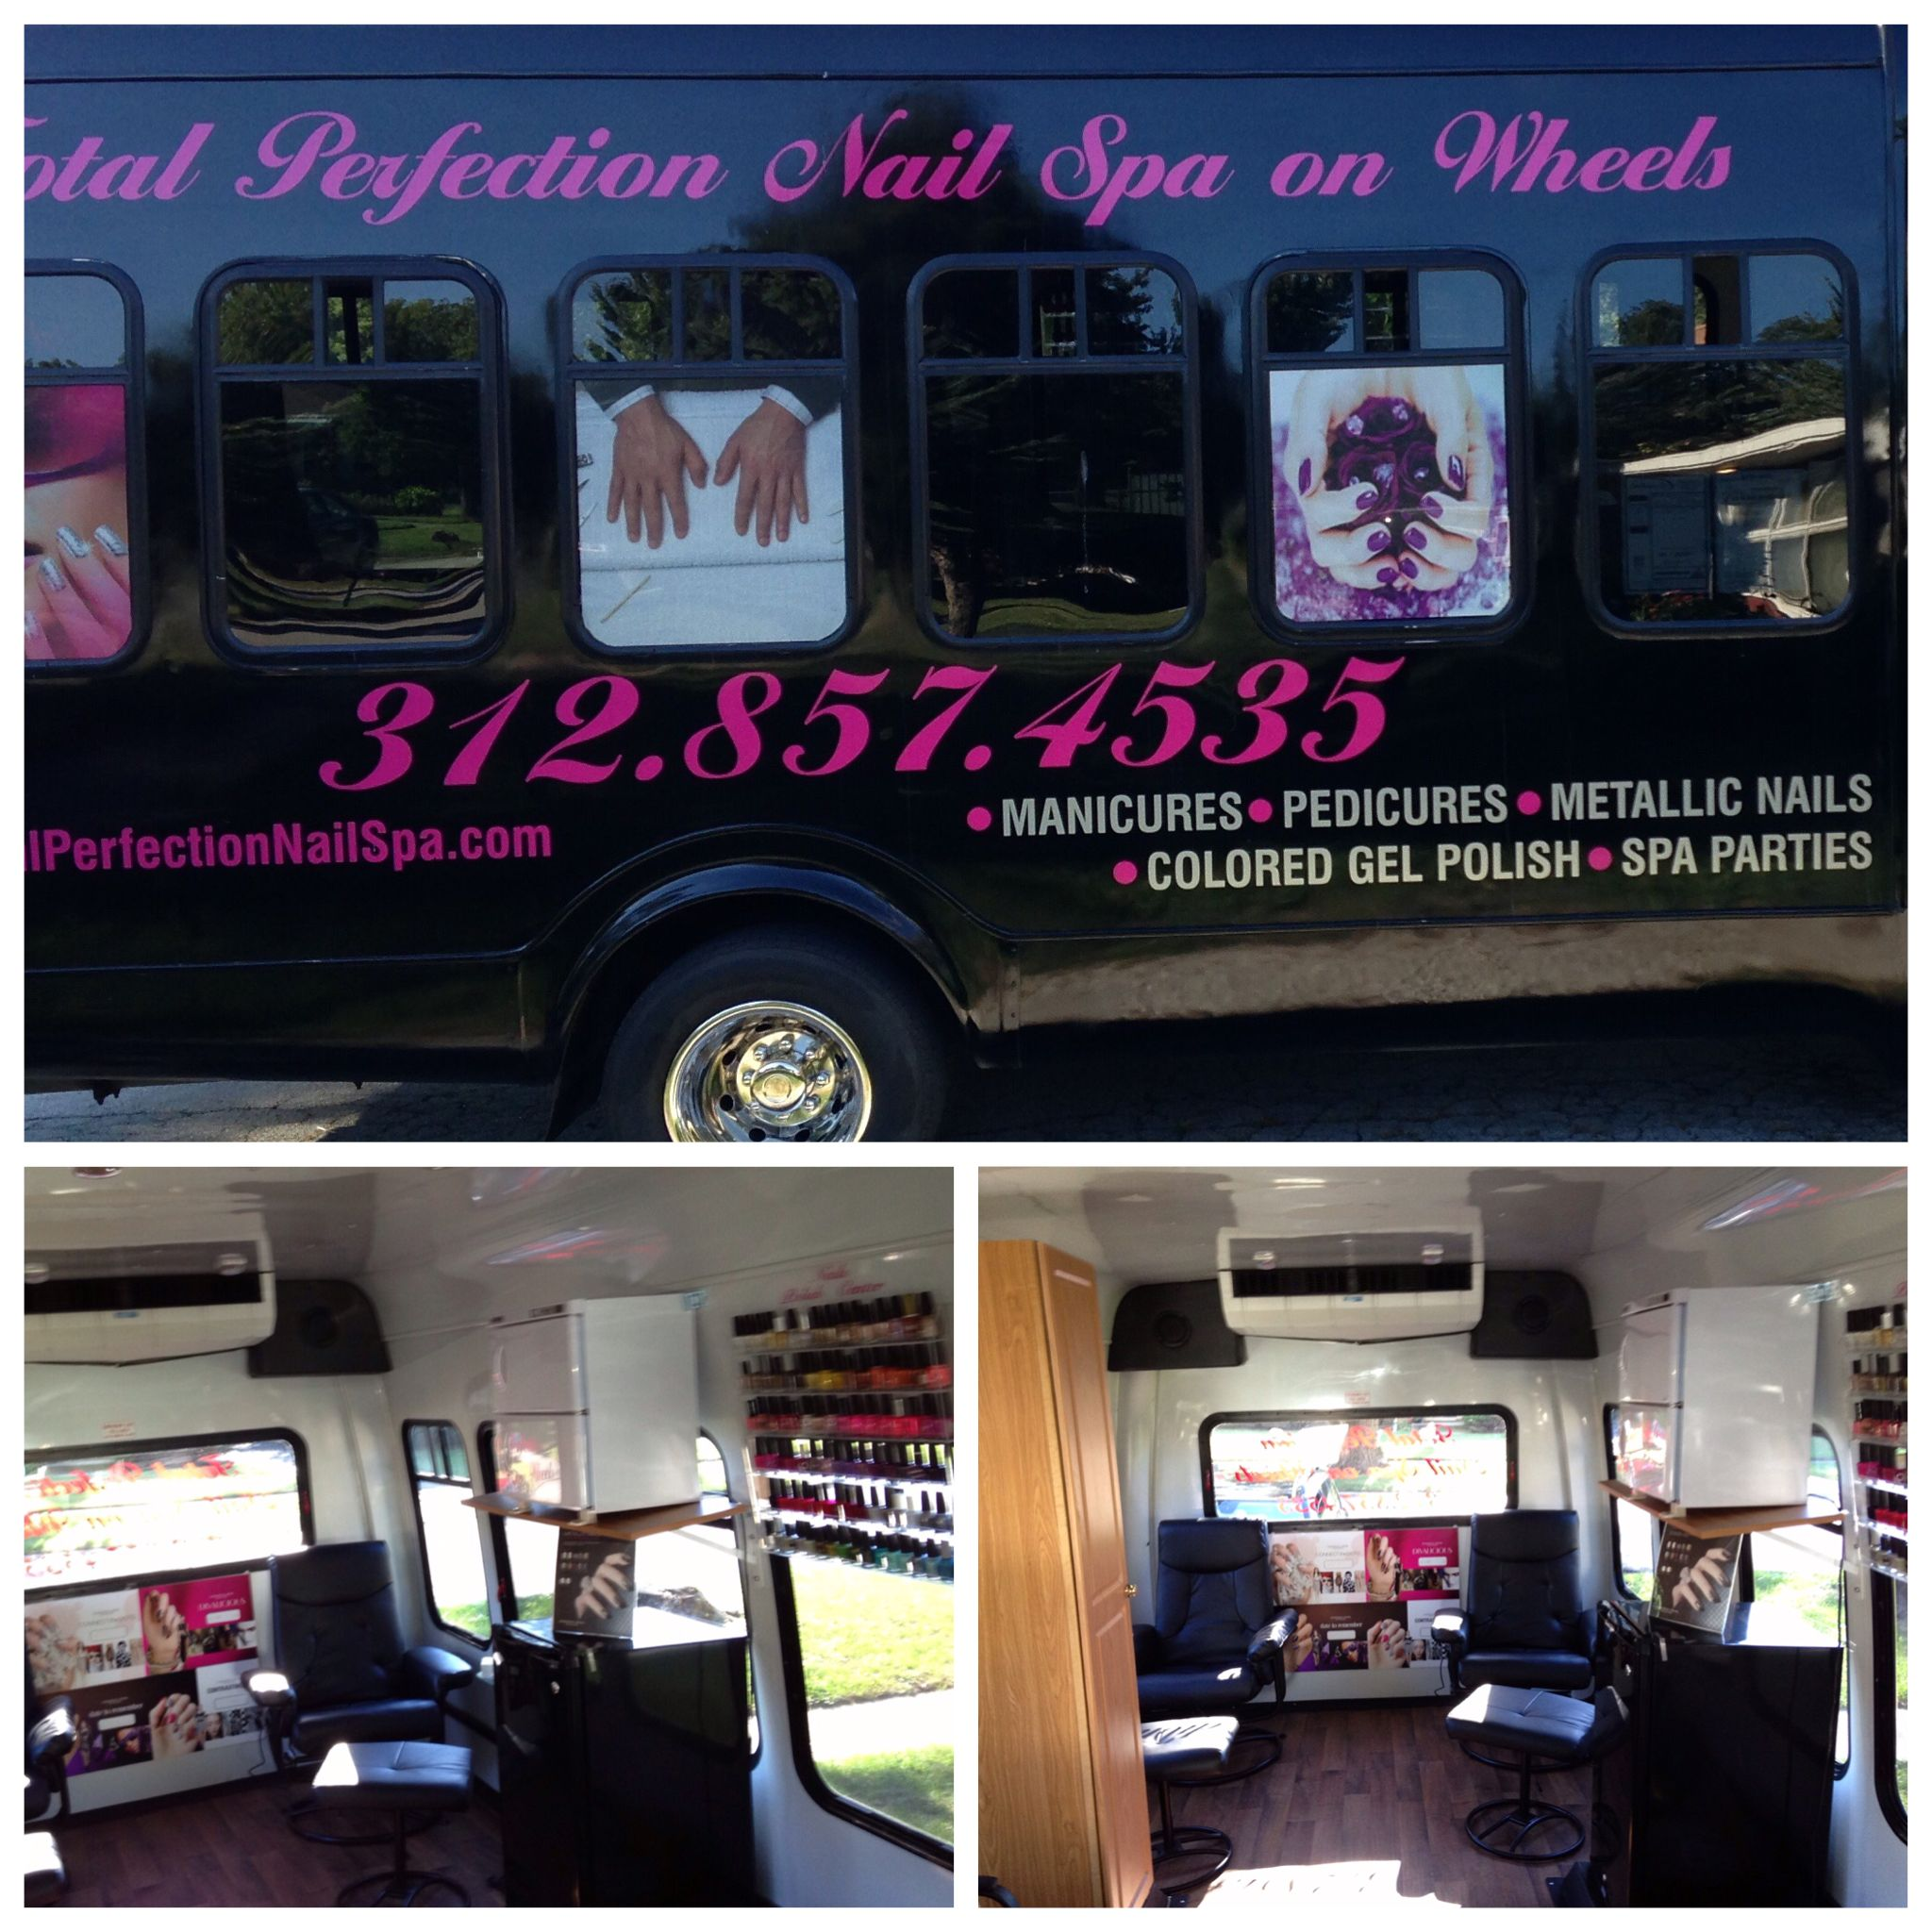 Chicago's first mobile nail salon. Mobile nails